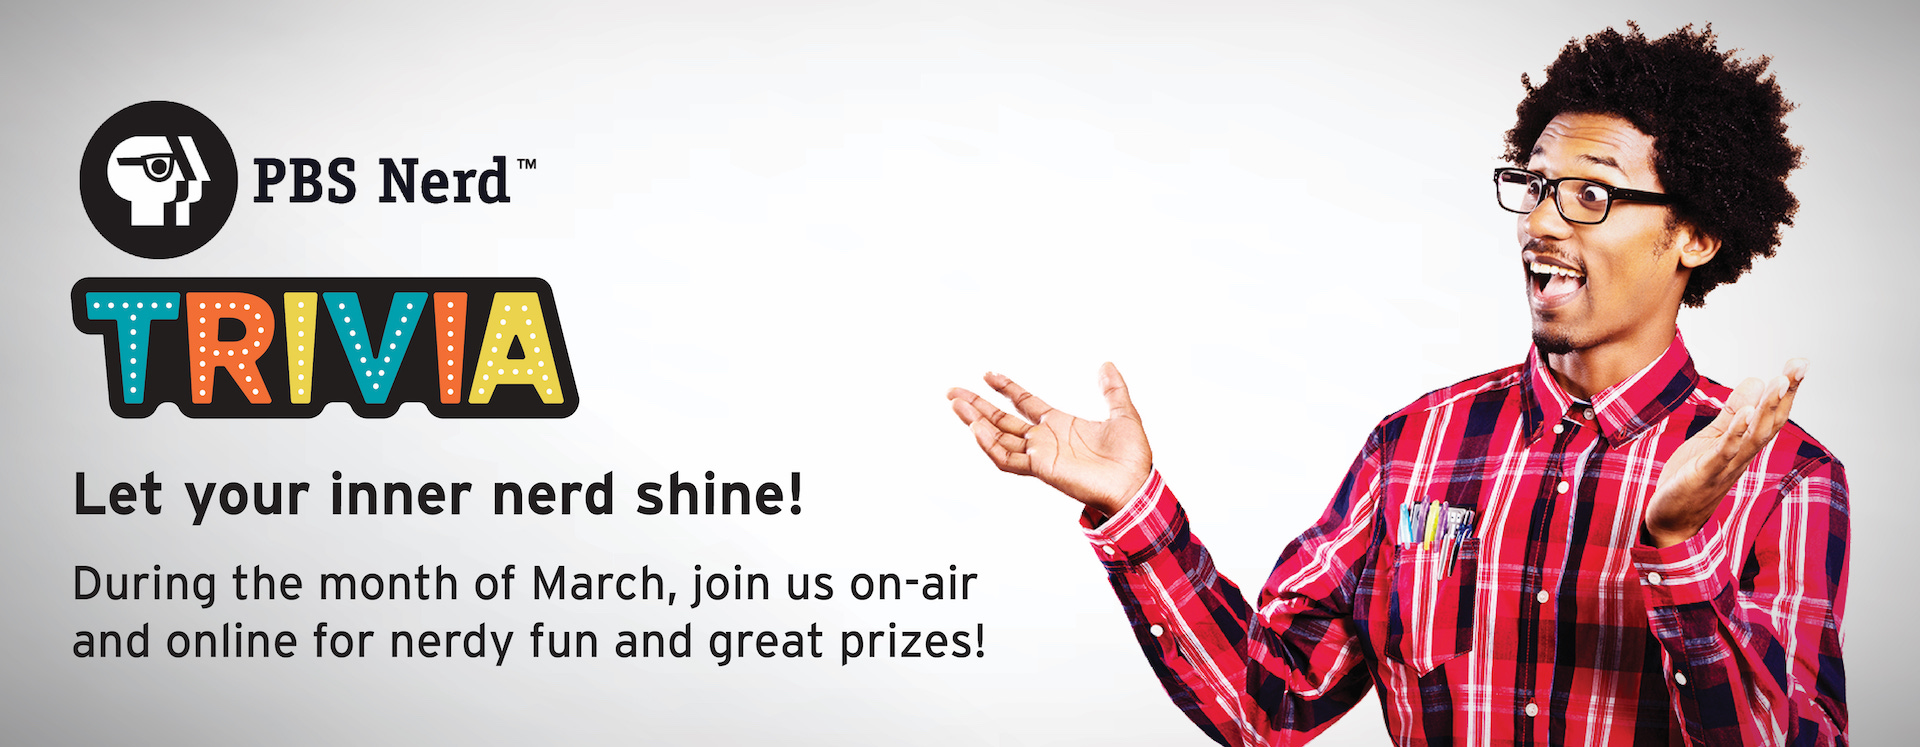 PBS Nerd Trivia: During the month of March, join us oniair and online for nerdy fun and great prizes!